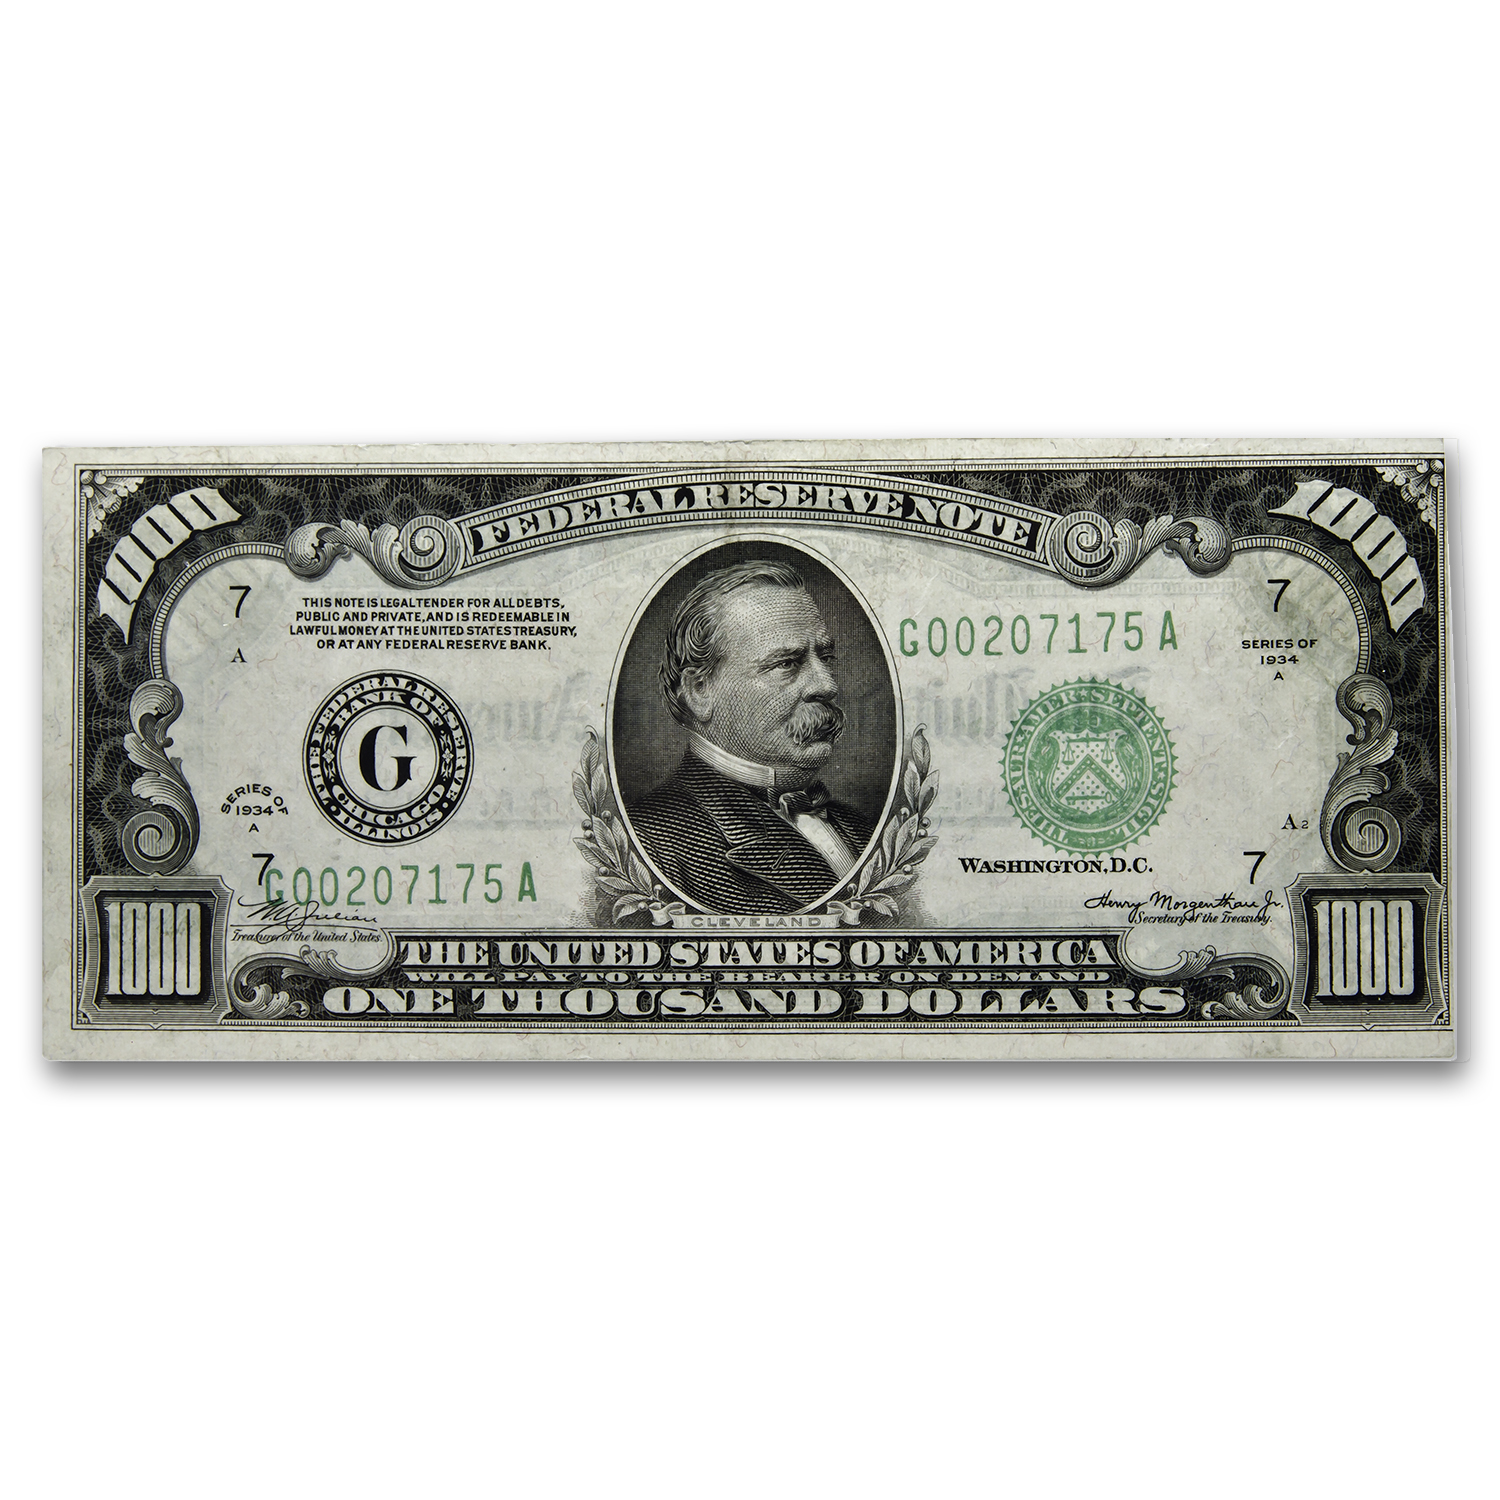 1934-A (G-Chicago) $1,000 FRN VF+ (SN#G00207175A)